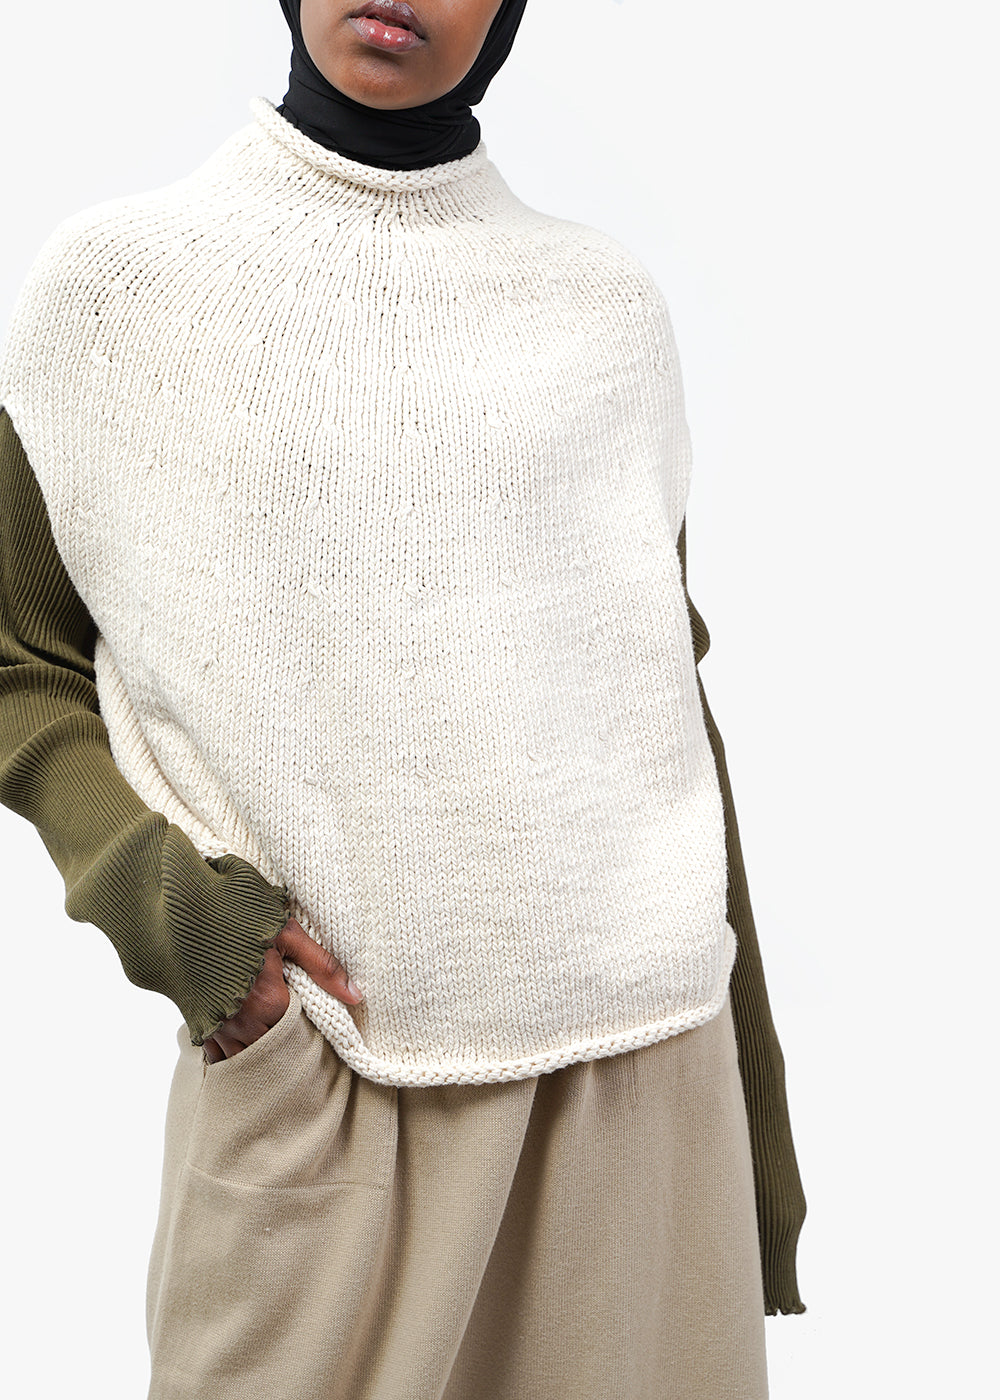 Lauren Manoogian Handknit Yoke Poncho — Shop sustainable fashion and slow fashion at New Classics Studios